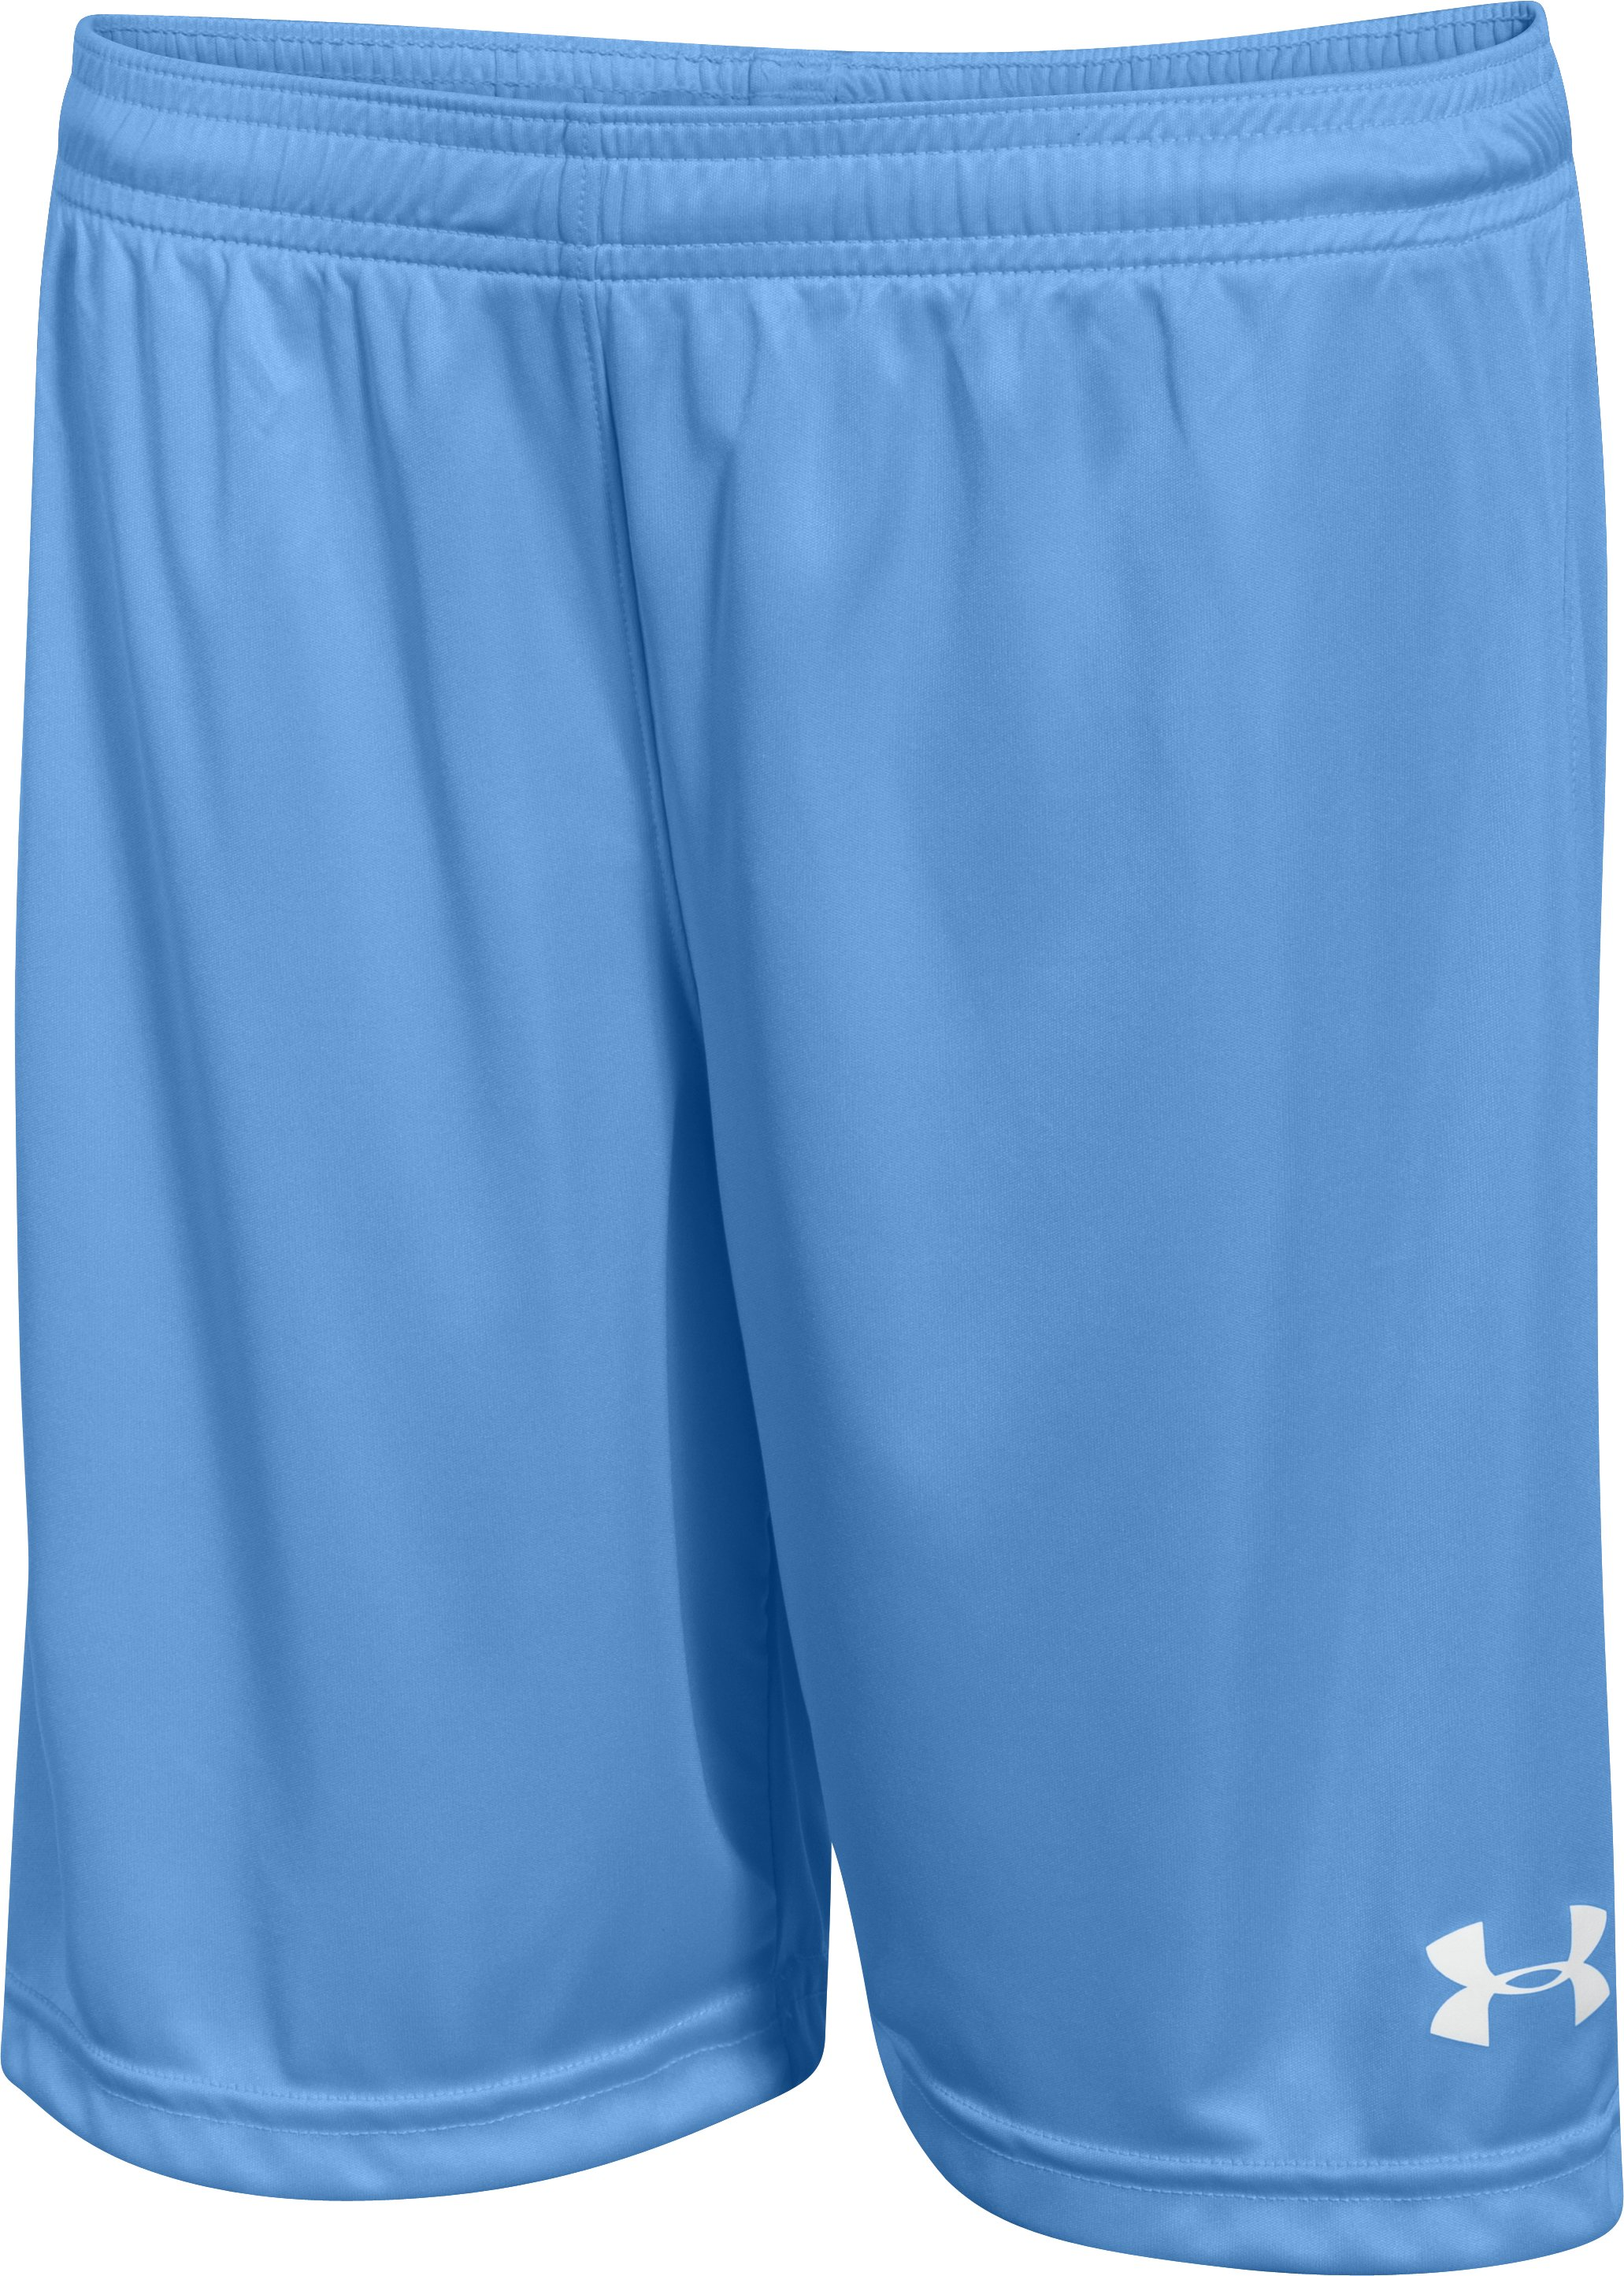 "Boys' UA Chaos 7"" Soccer Shorts, Carolina Blue"